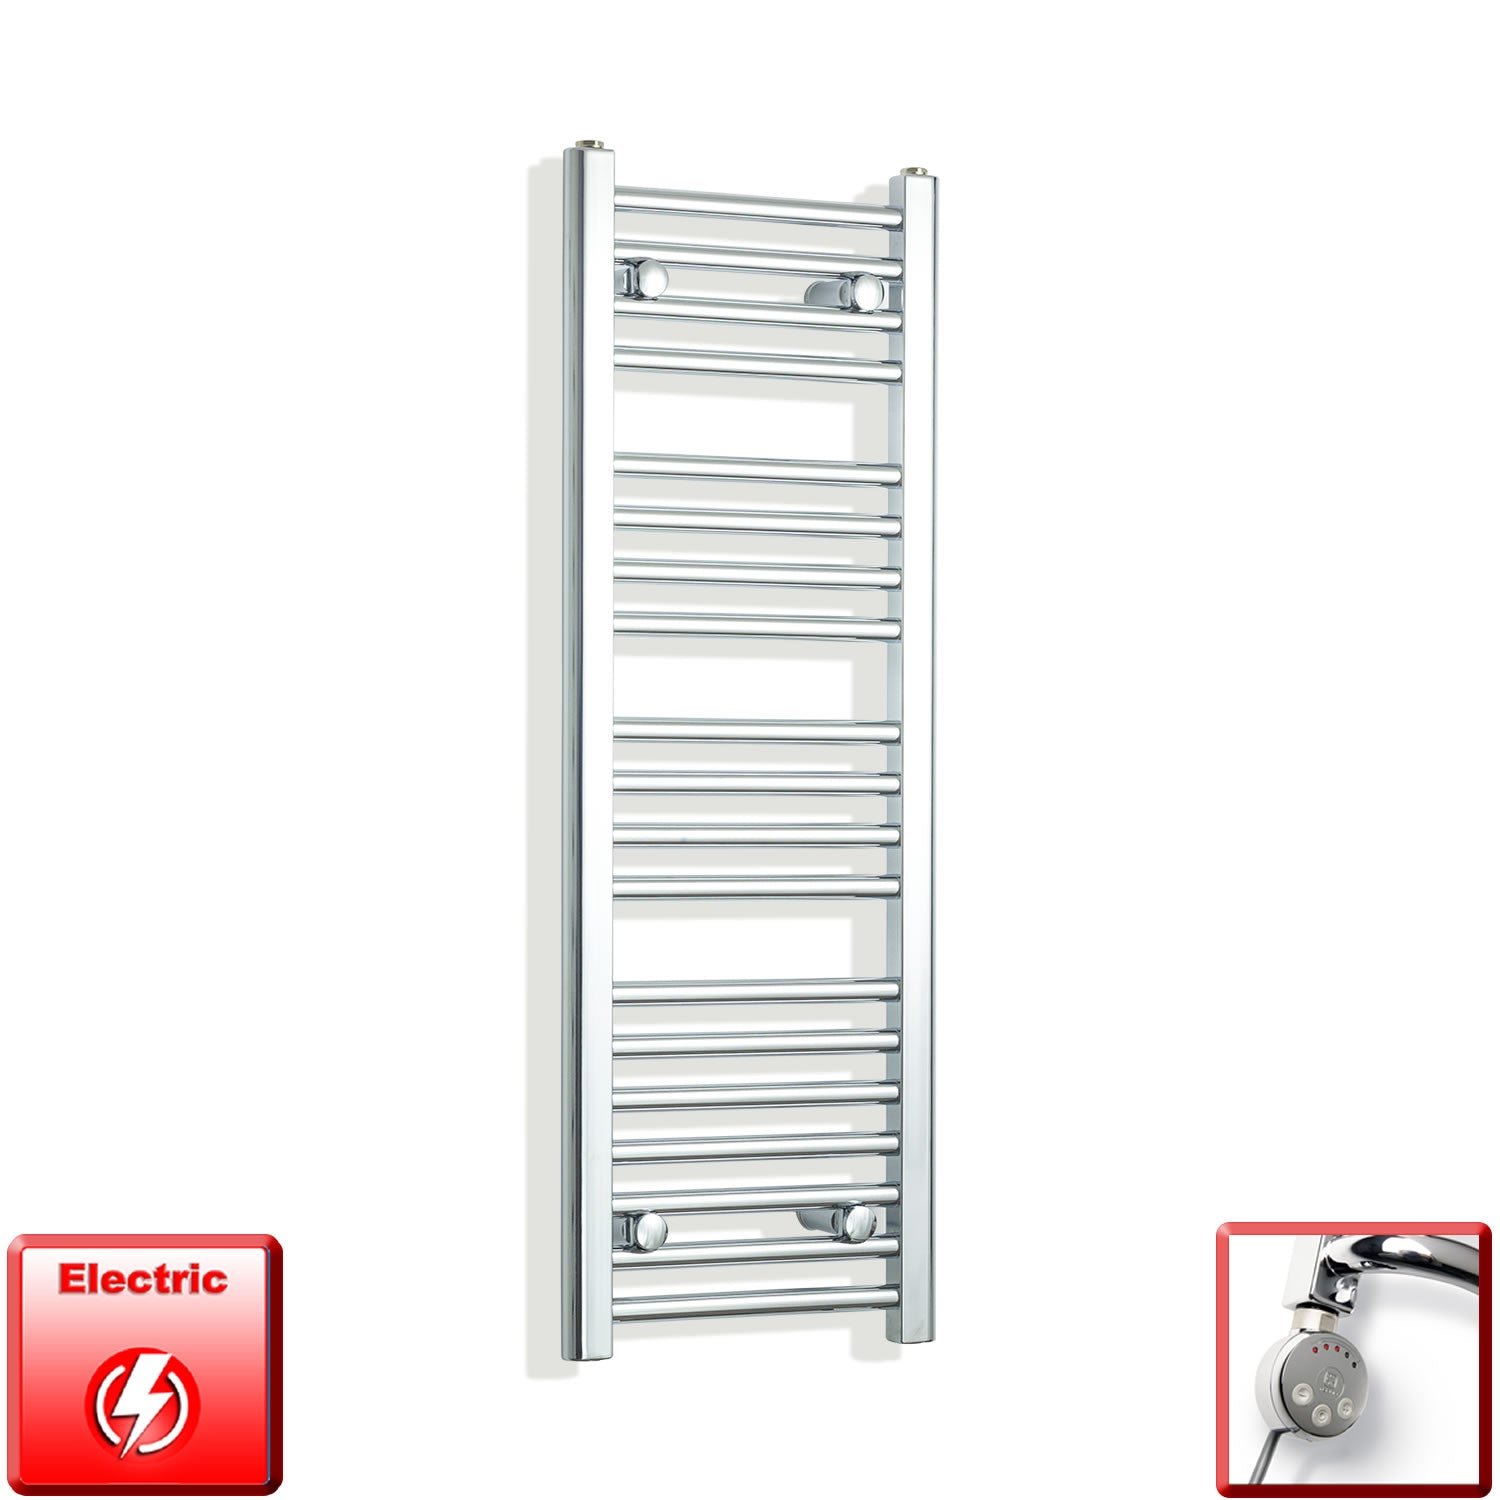 350mm Wide 1000mm High Flat Chrome Pre-Filled Electric Heated Towel Rail Radiator HTR,MEG Thermostatic Element